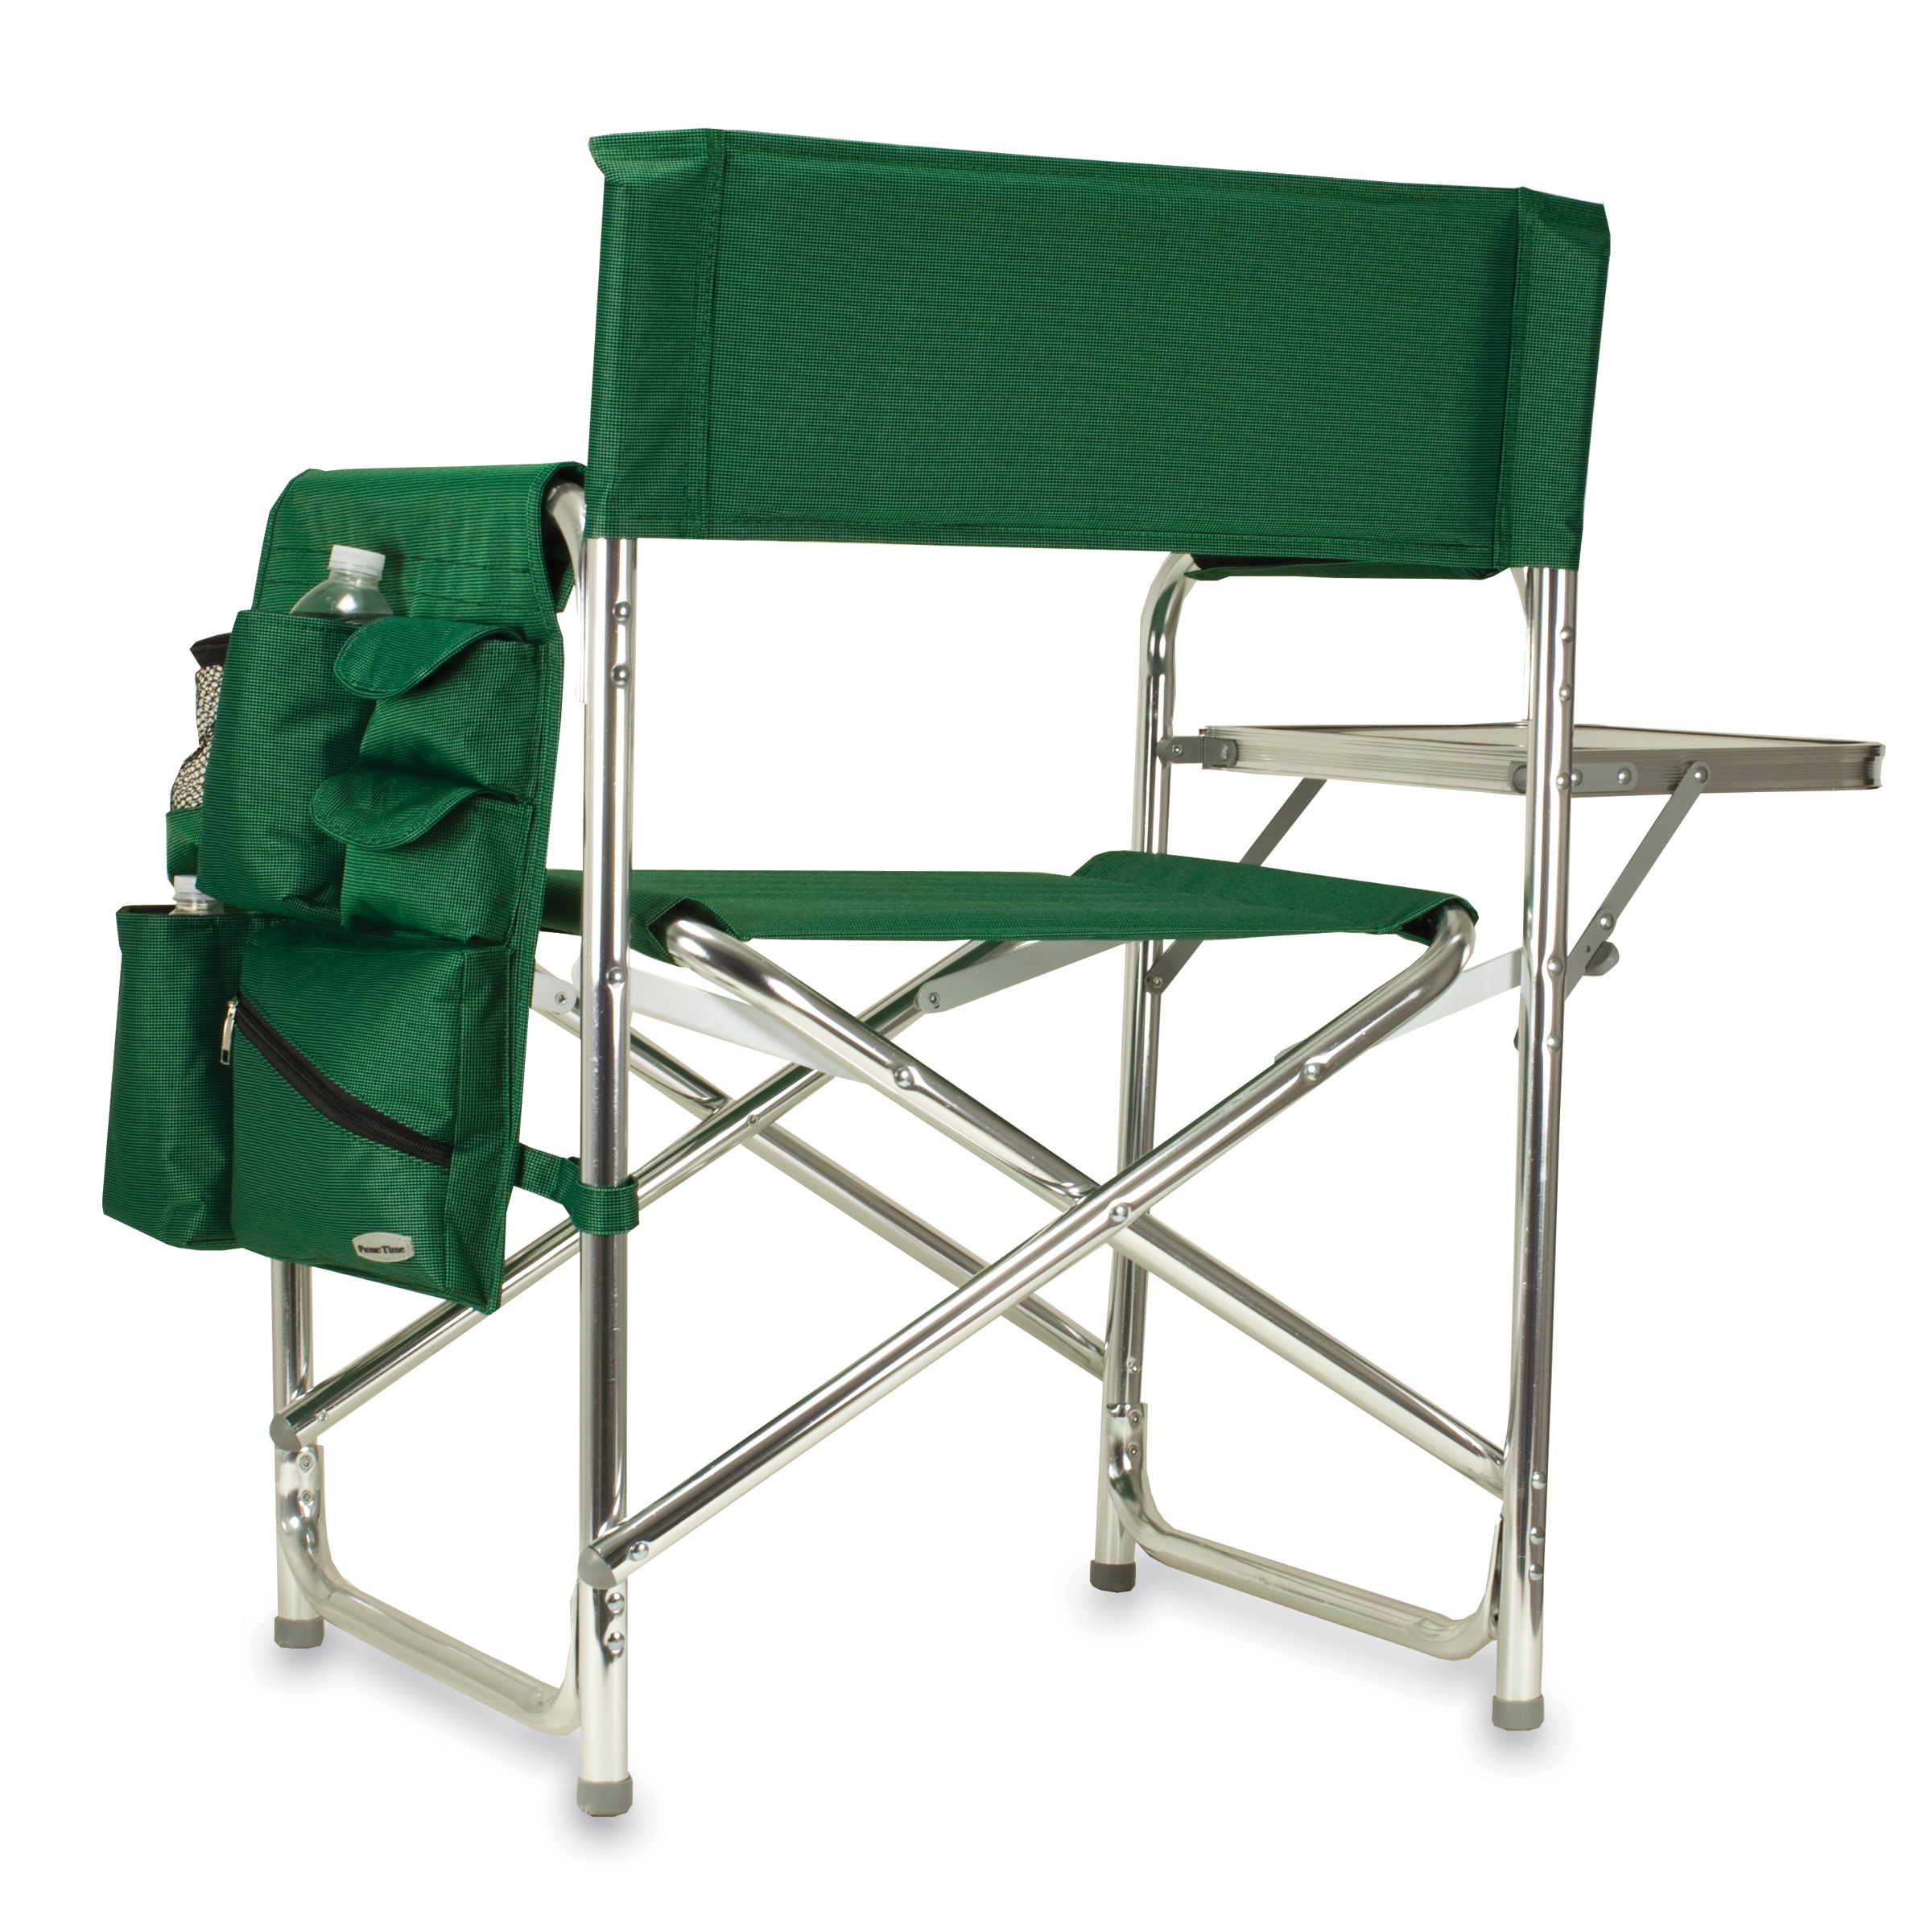 Big W Portable Cot Picnic Time Green Portable Folding Sports Camping Chair